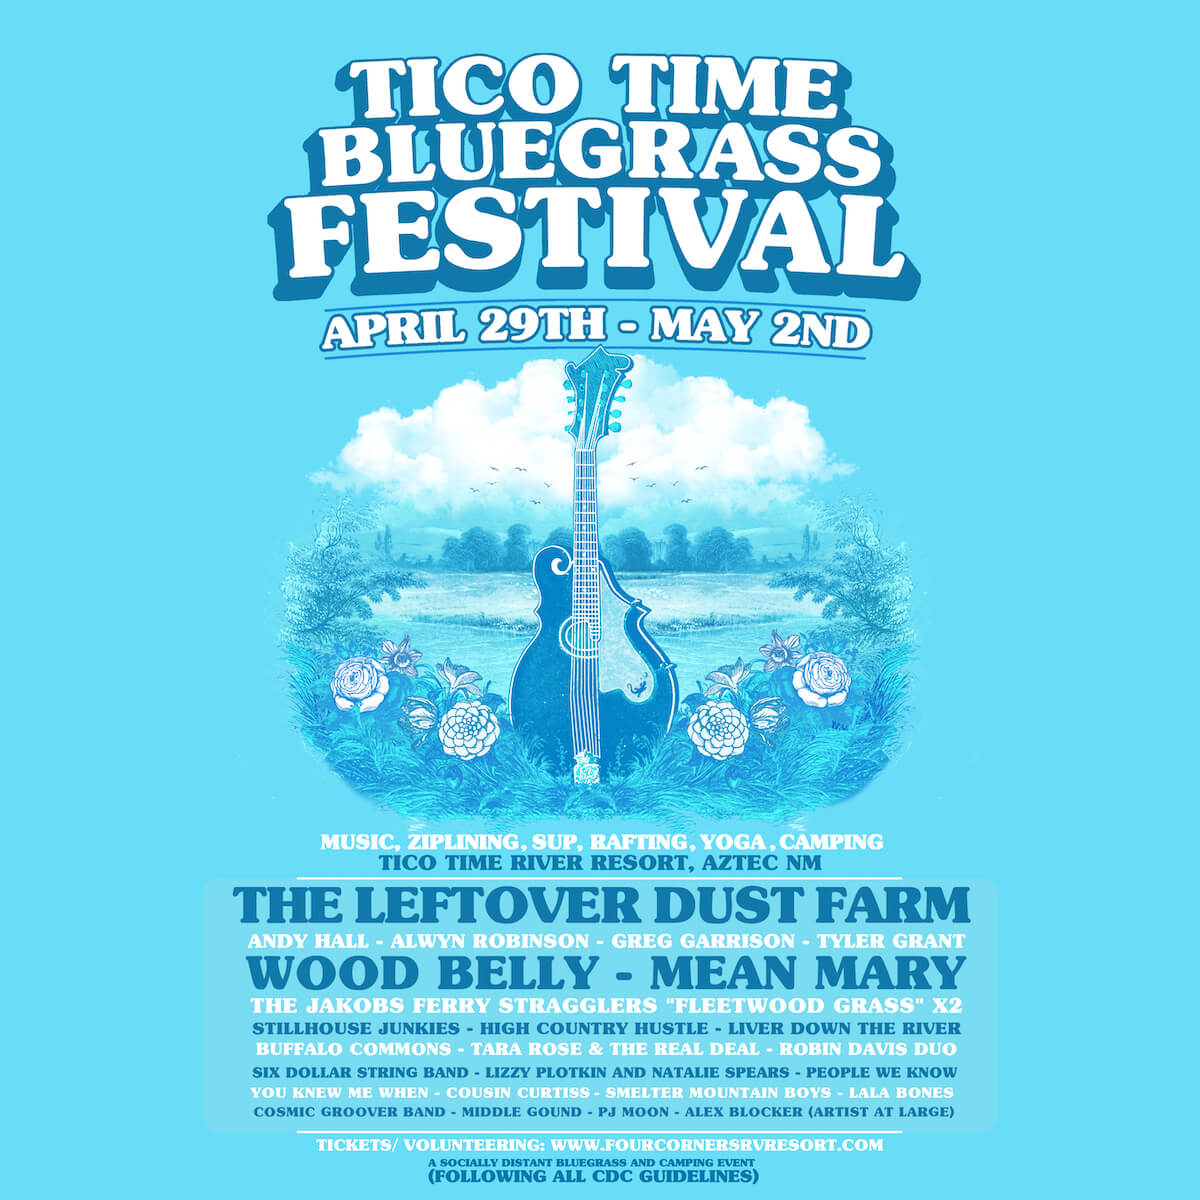 Tico Time Bluegrass Festival flyer